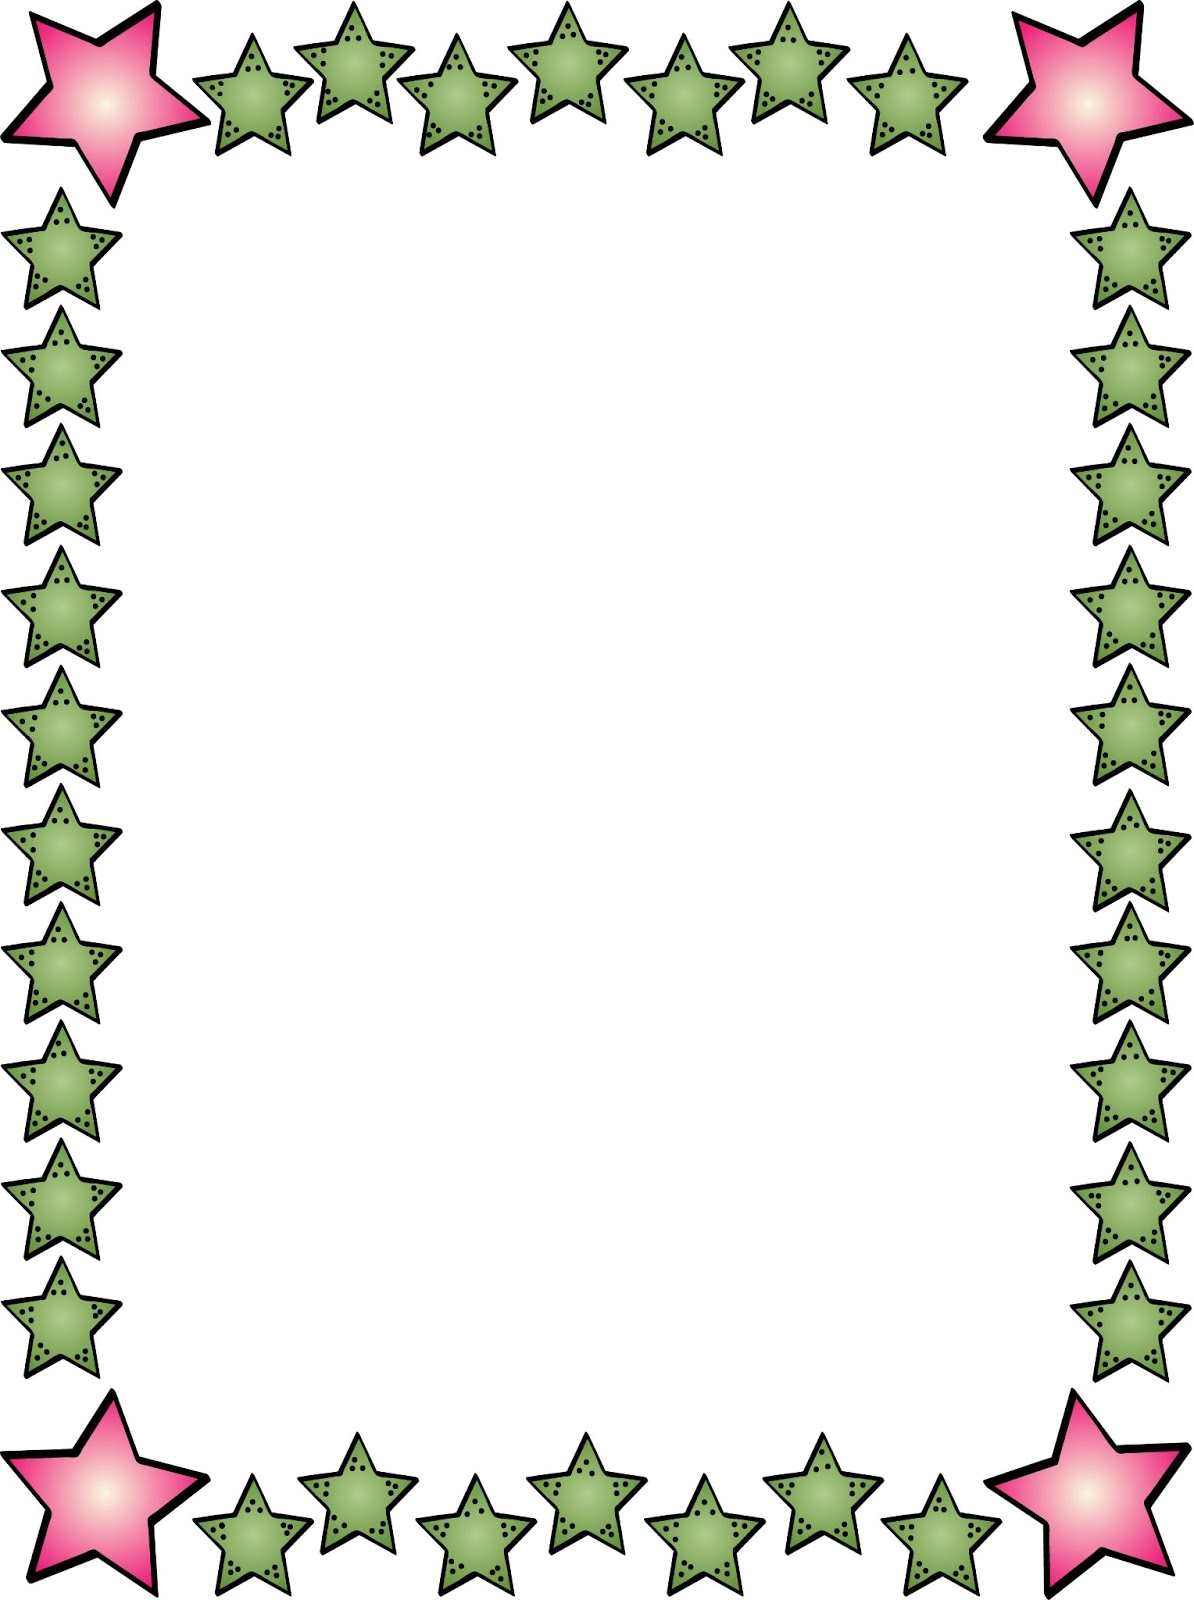 10 Star Borders And Frames Free Cliparts That You Can Download To You